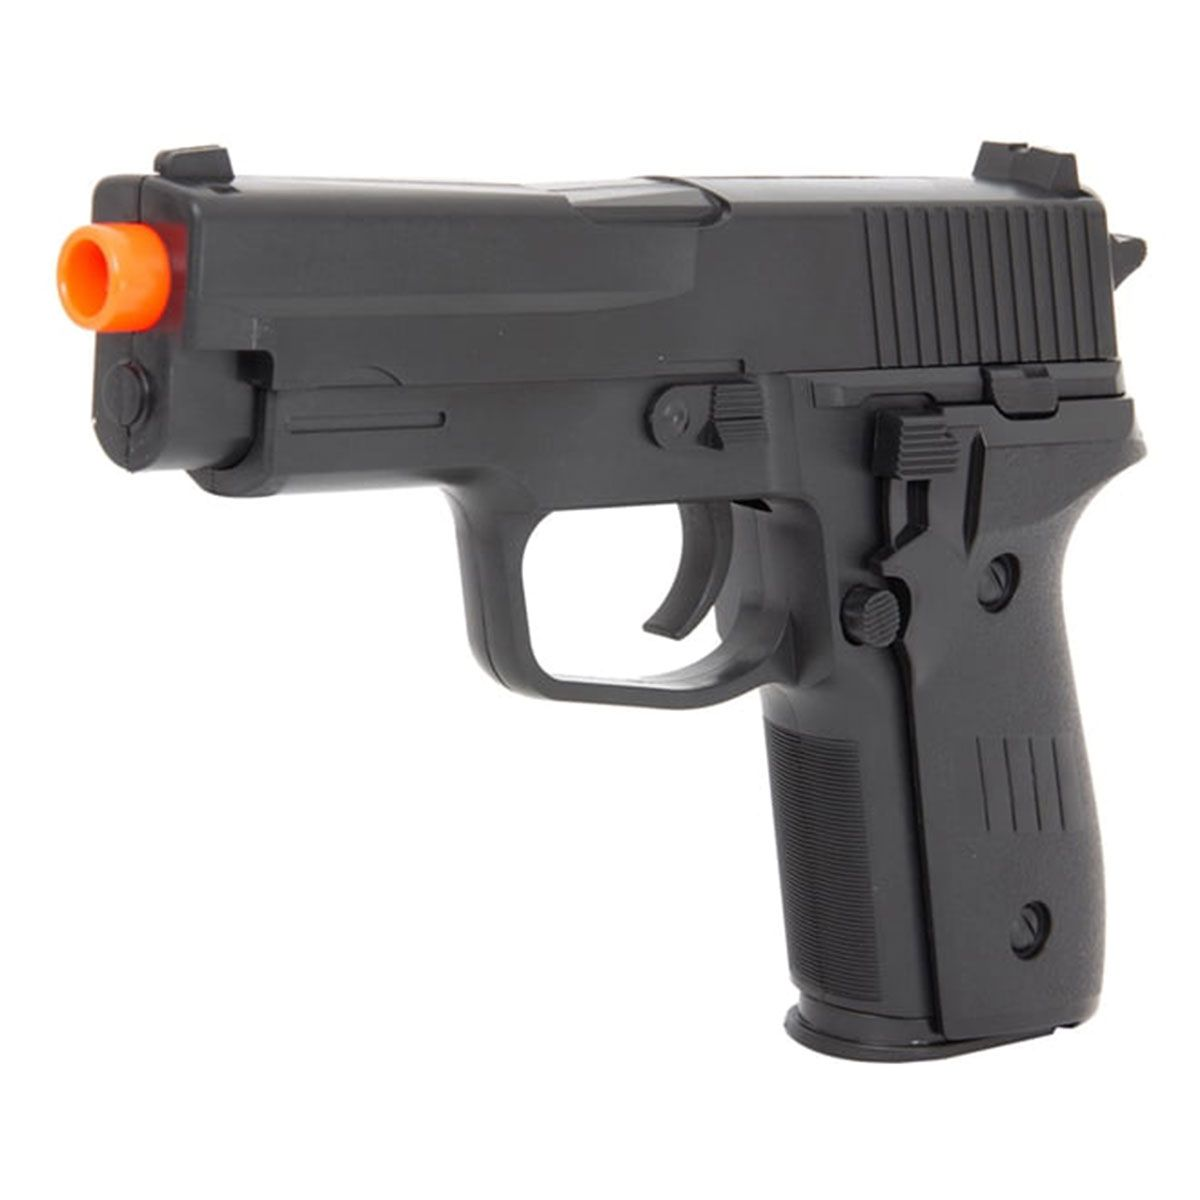 Pistola de Airsoft Vigor P226 2124 Mola 6mm